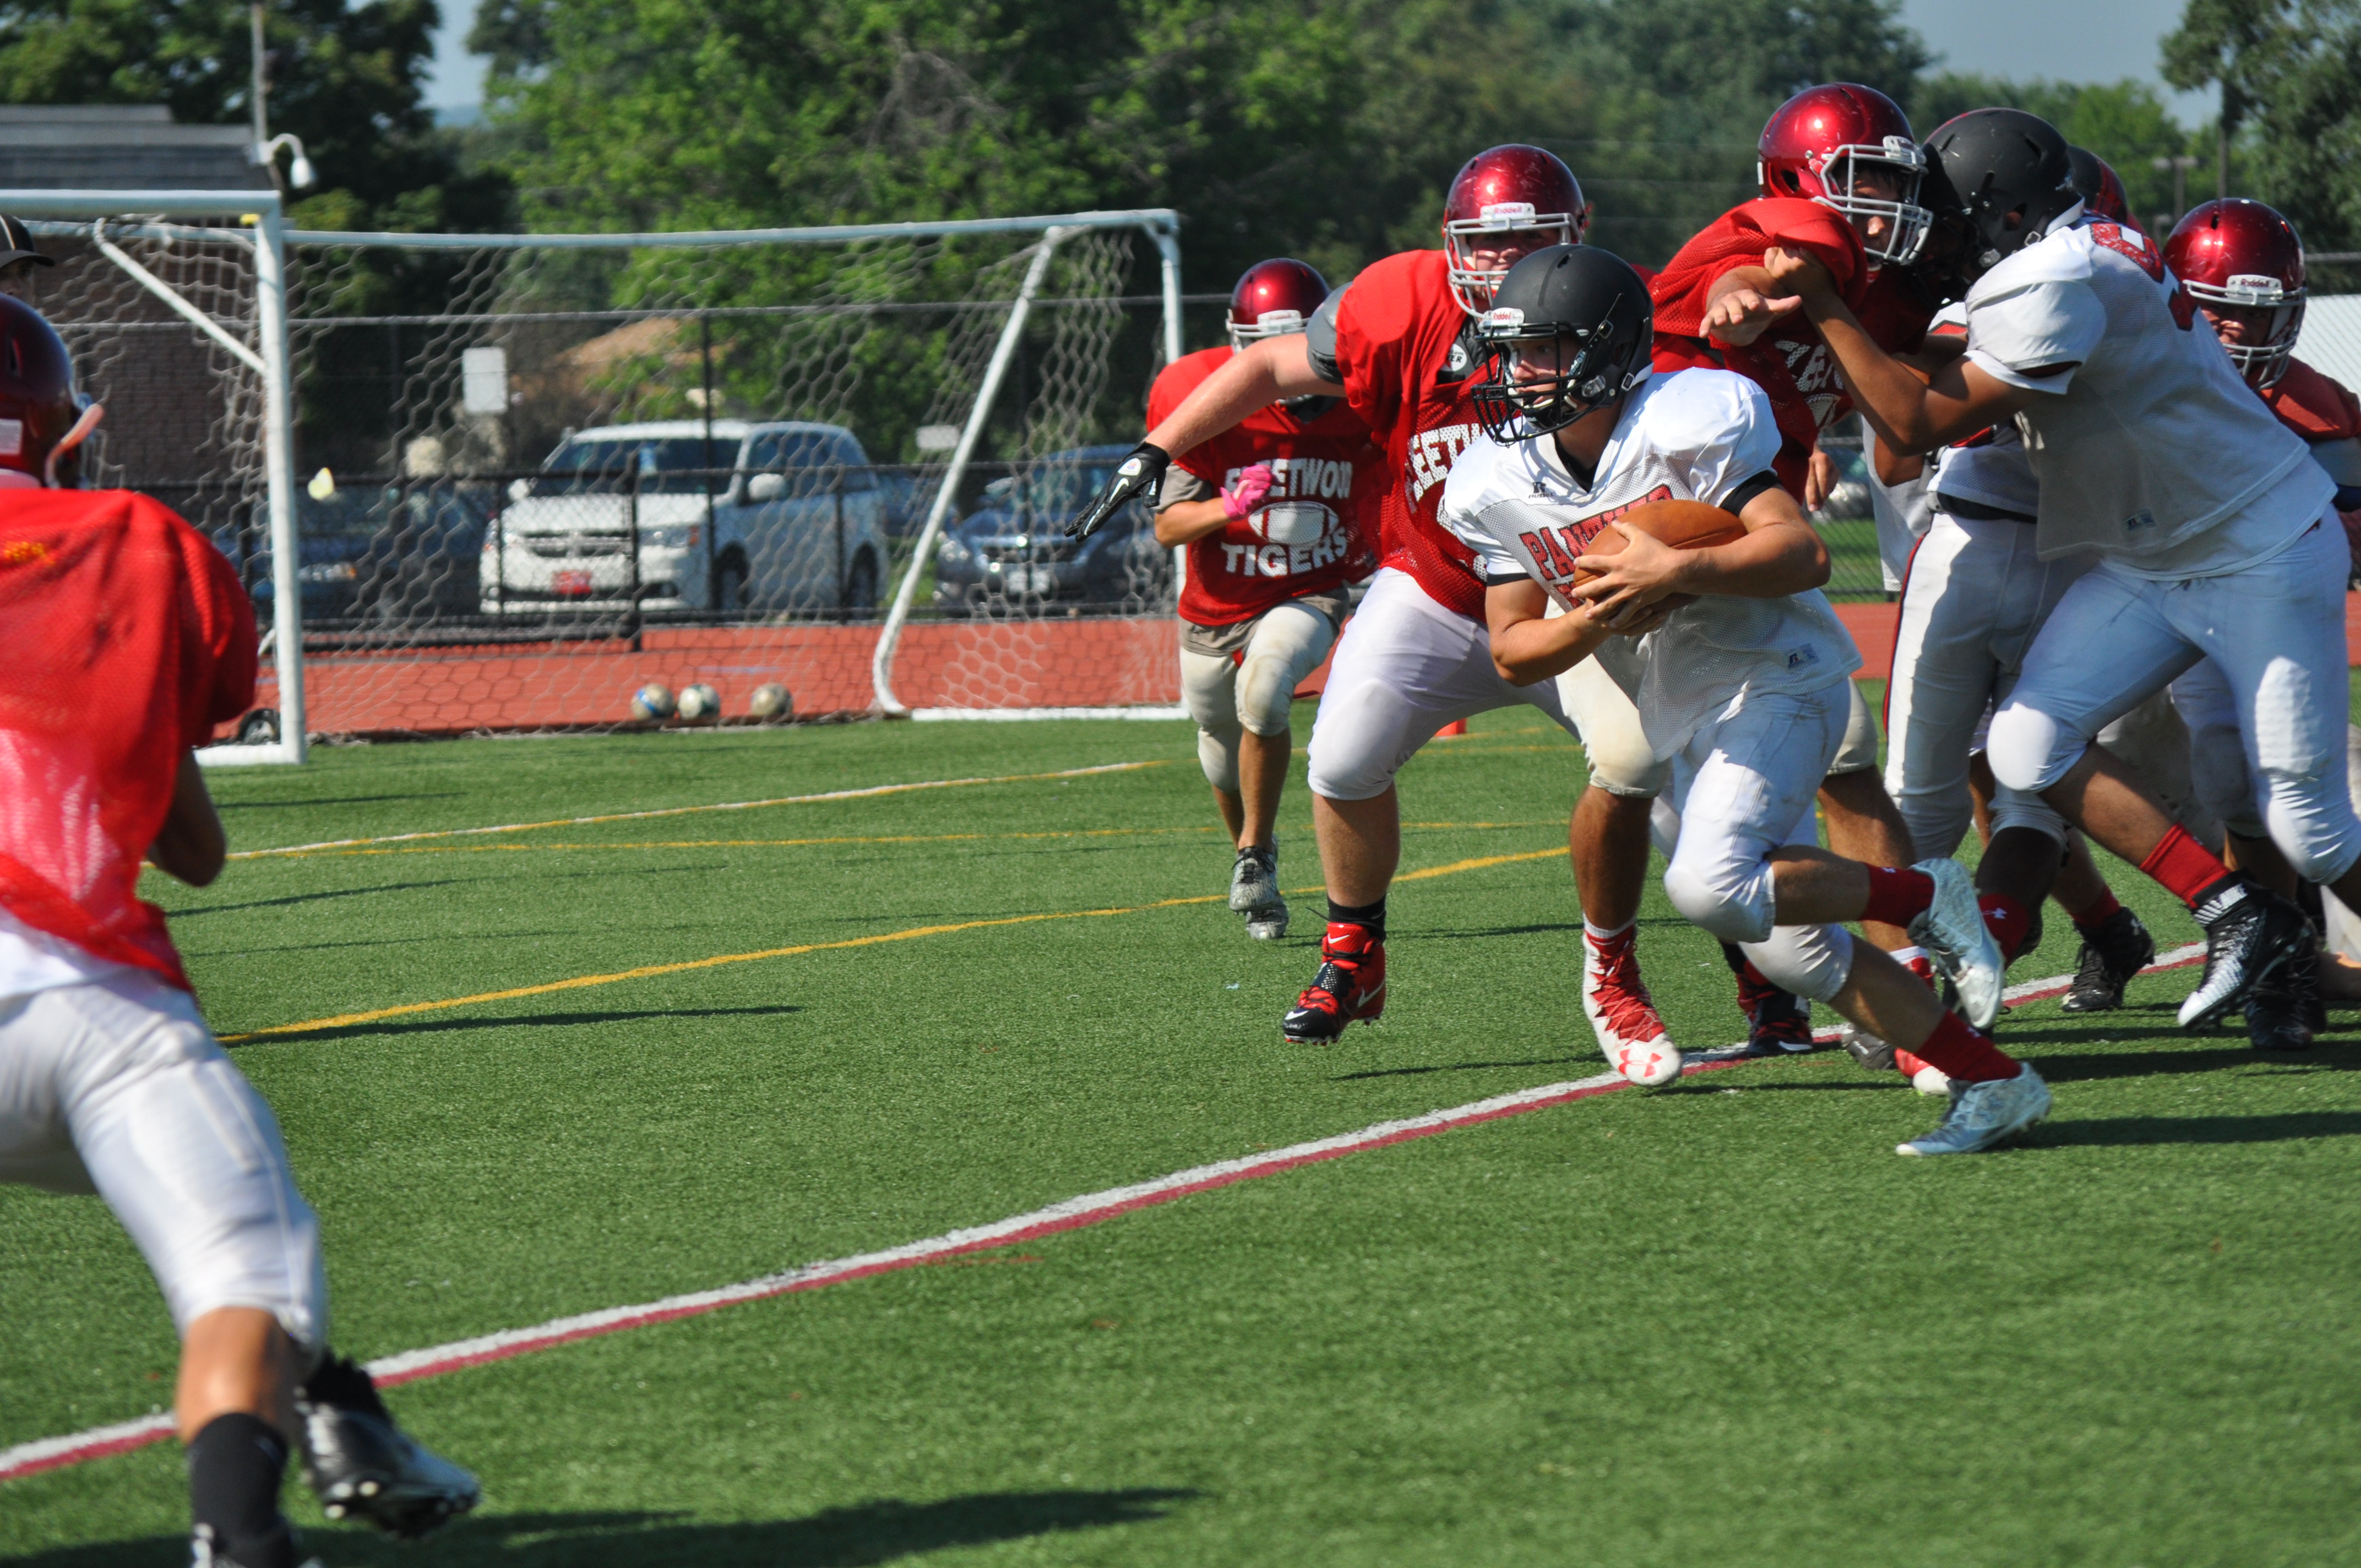 Panther sophomore Justin Kyra on his way toward the Fleetwood end zone.